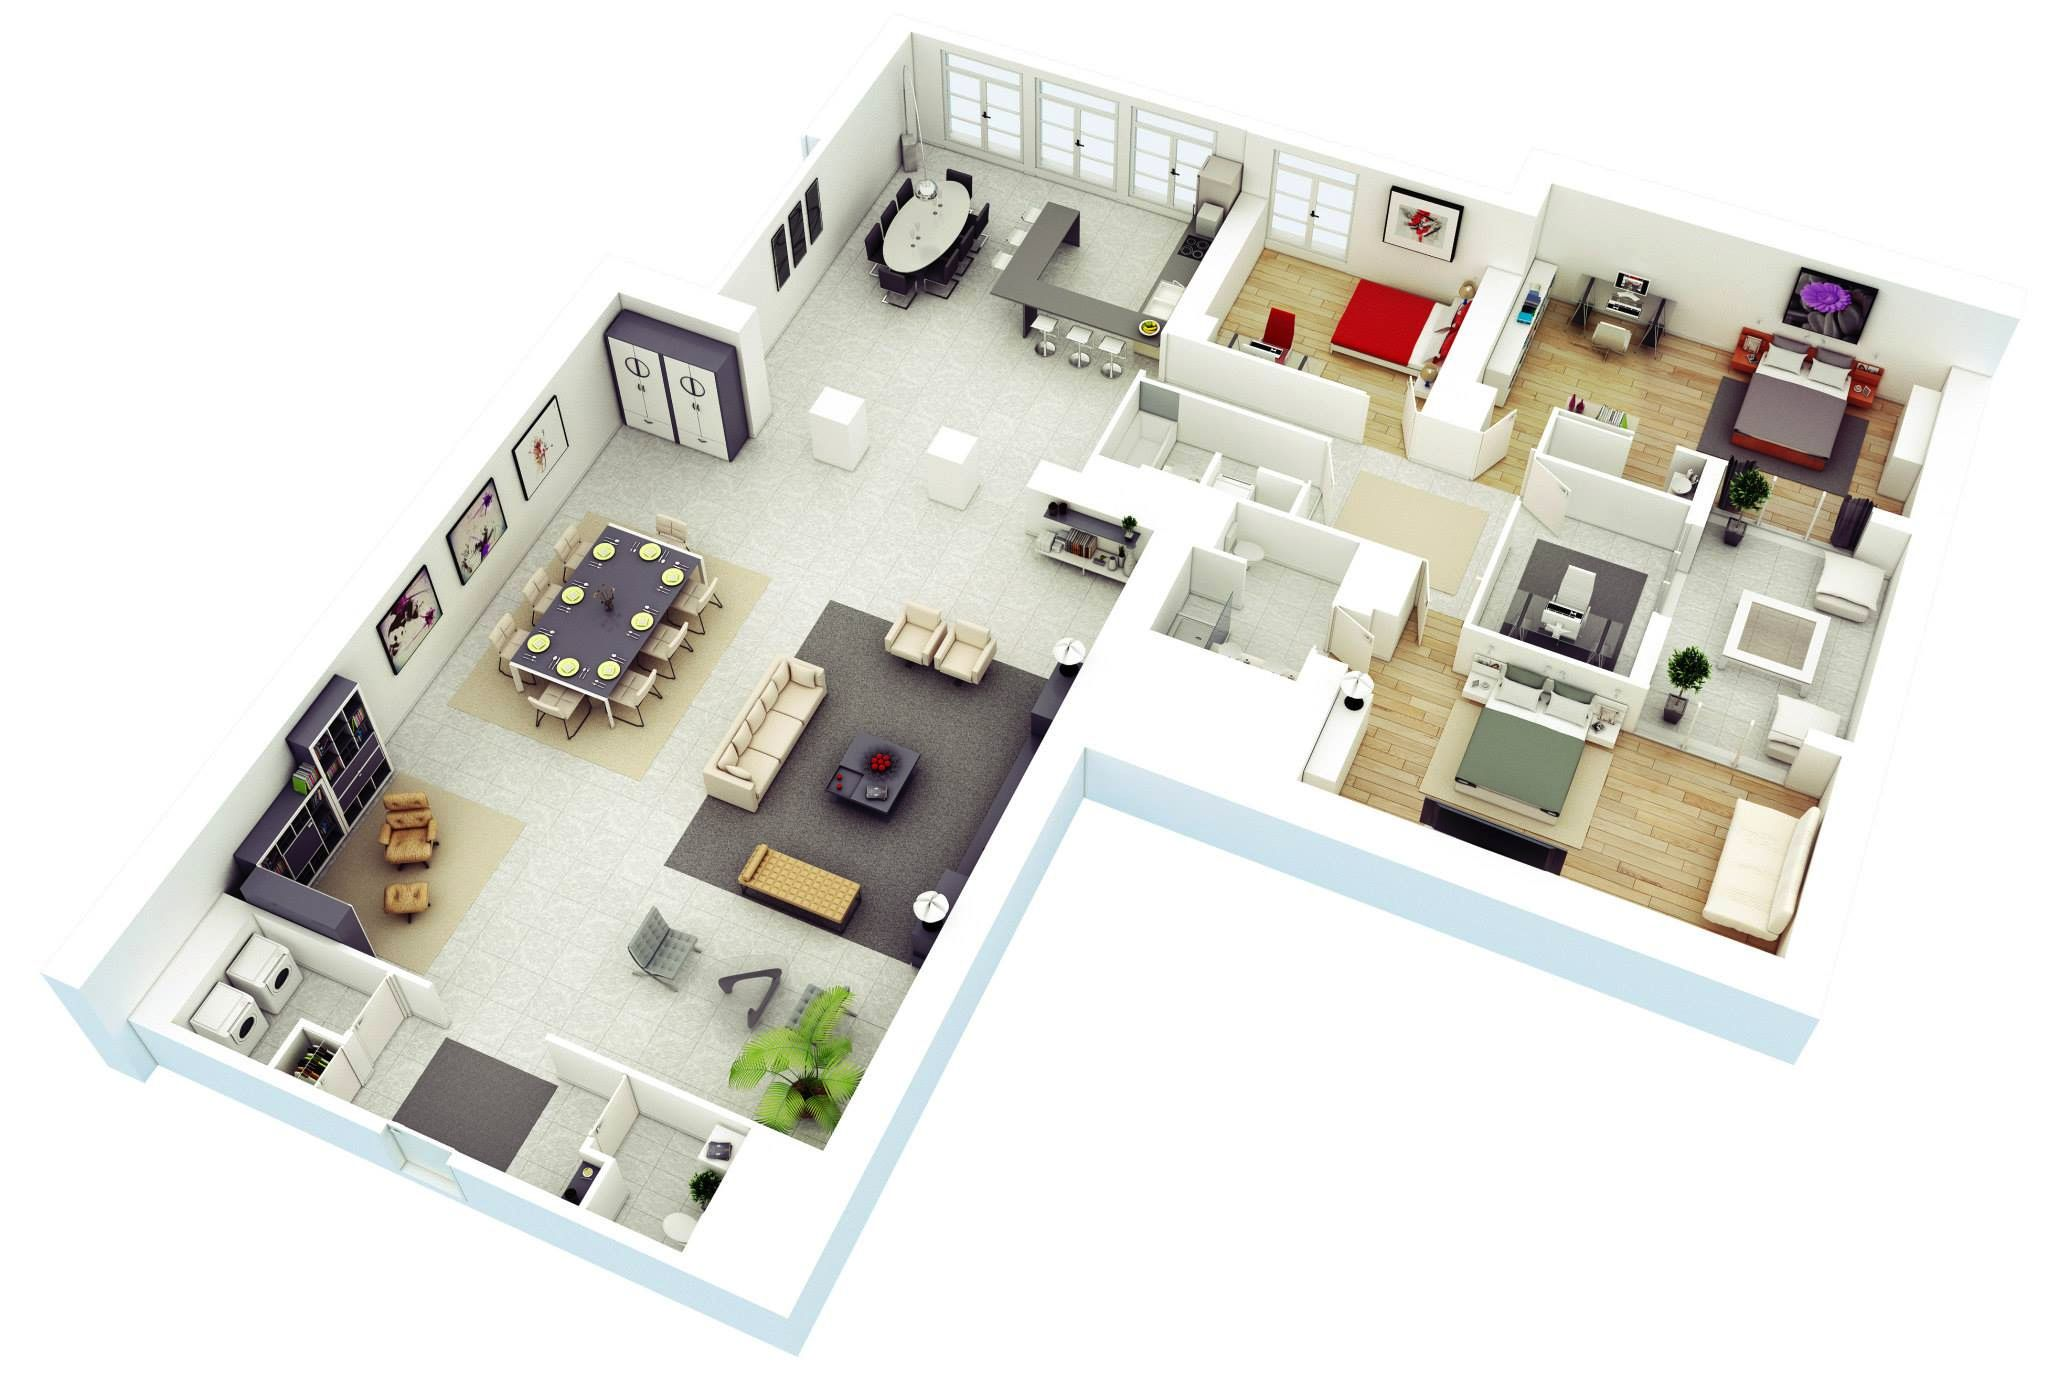 Understanding 3d floor plans and finding the right layout for you L shaped master bedroom layout